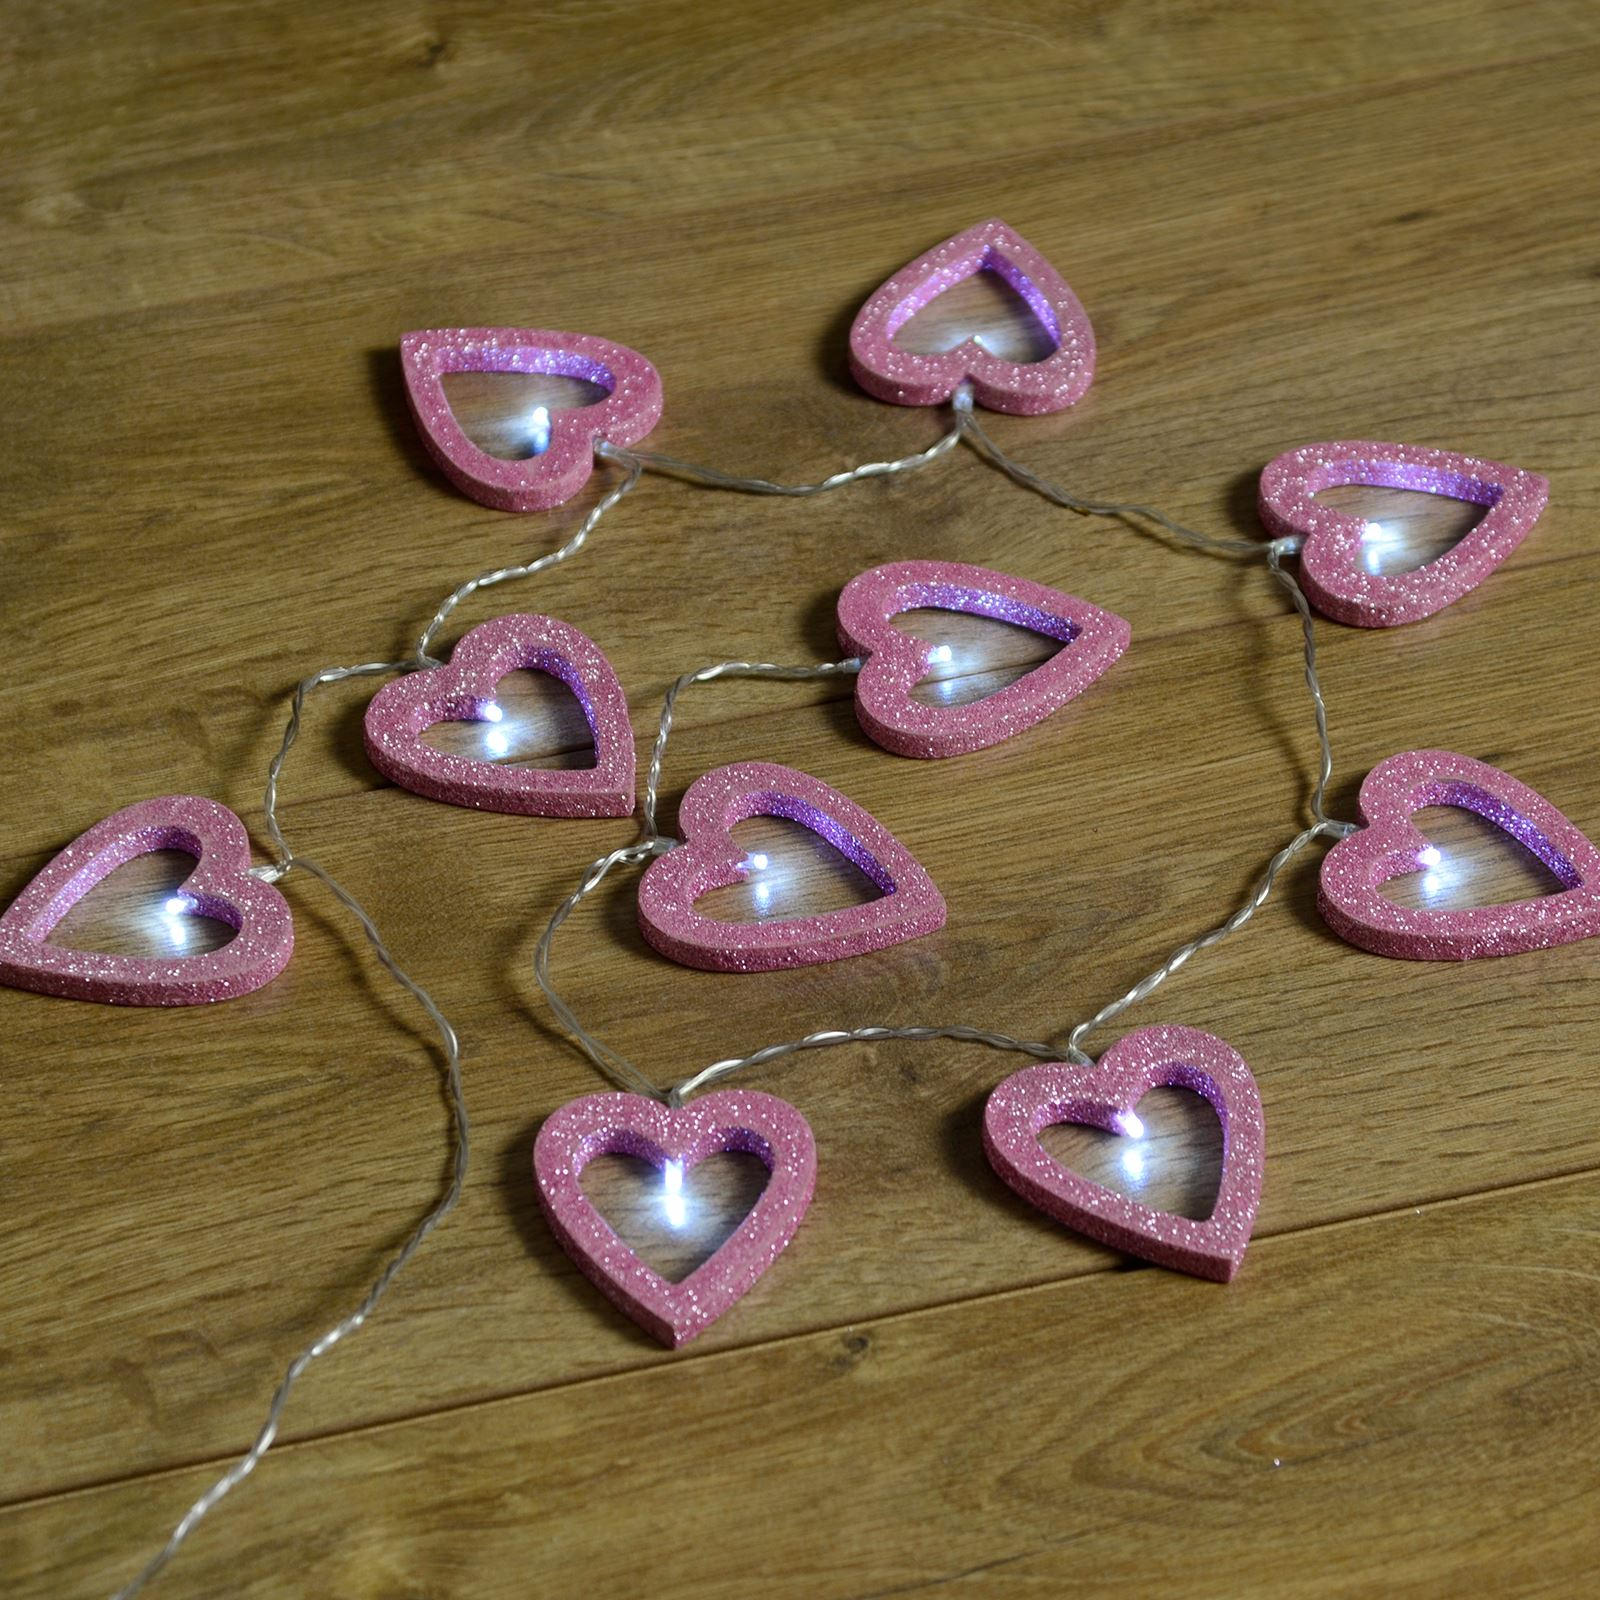 on sale e9874 87dfc Details about Set Of 10 Wooden Pink Glitter Heart Shaped Fairy String  Lights Bright White LEDs